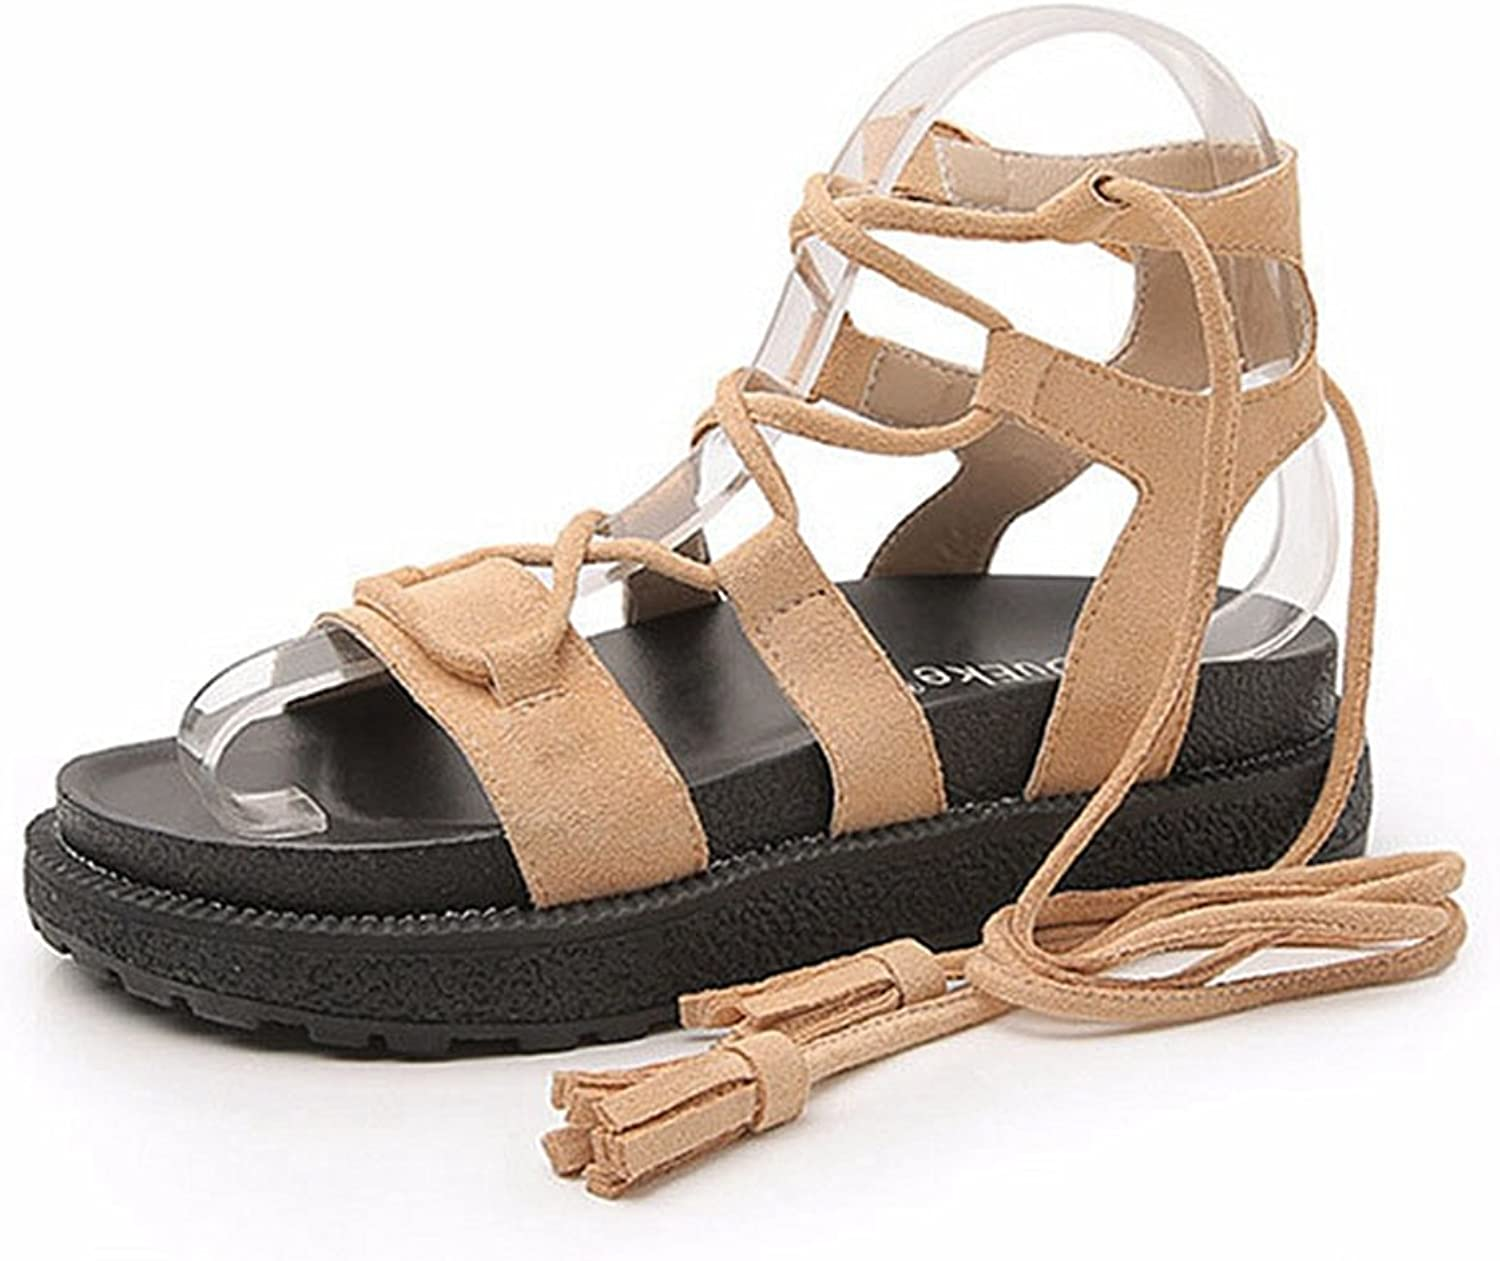 CYBLING Women Open Toe Strappy Flatform Flat Sandal Ankle Lace Up shoes Size